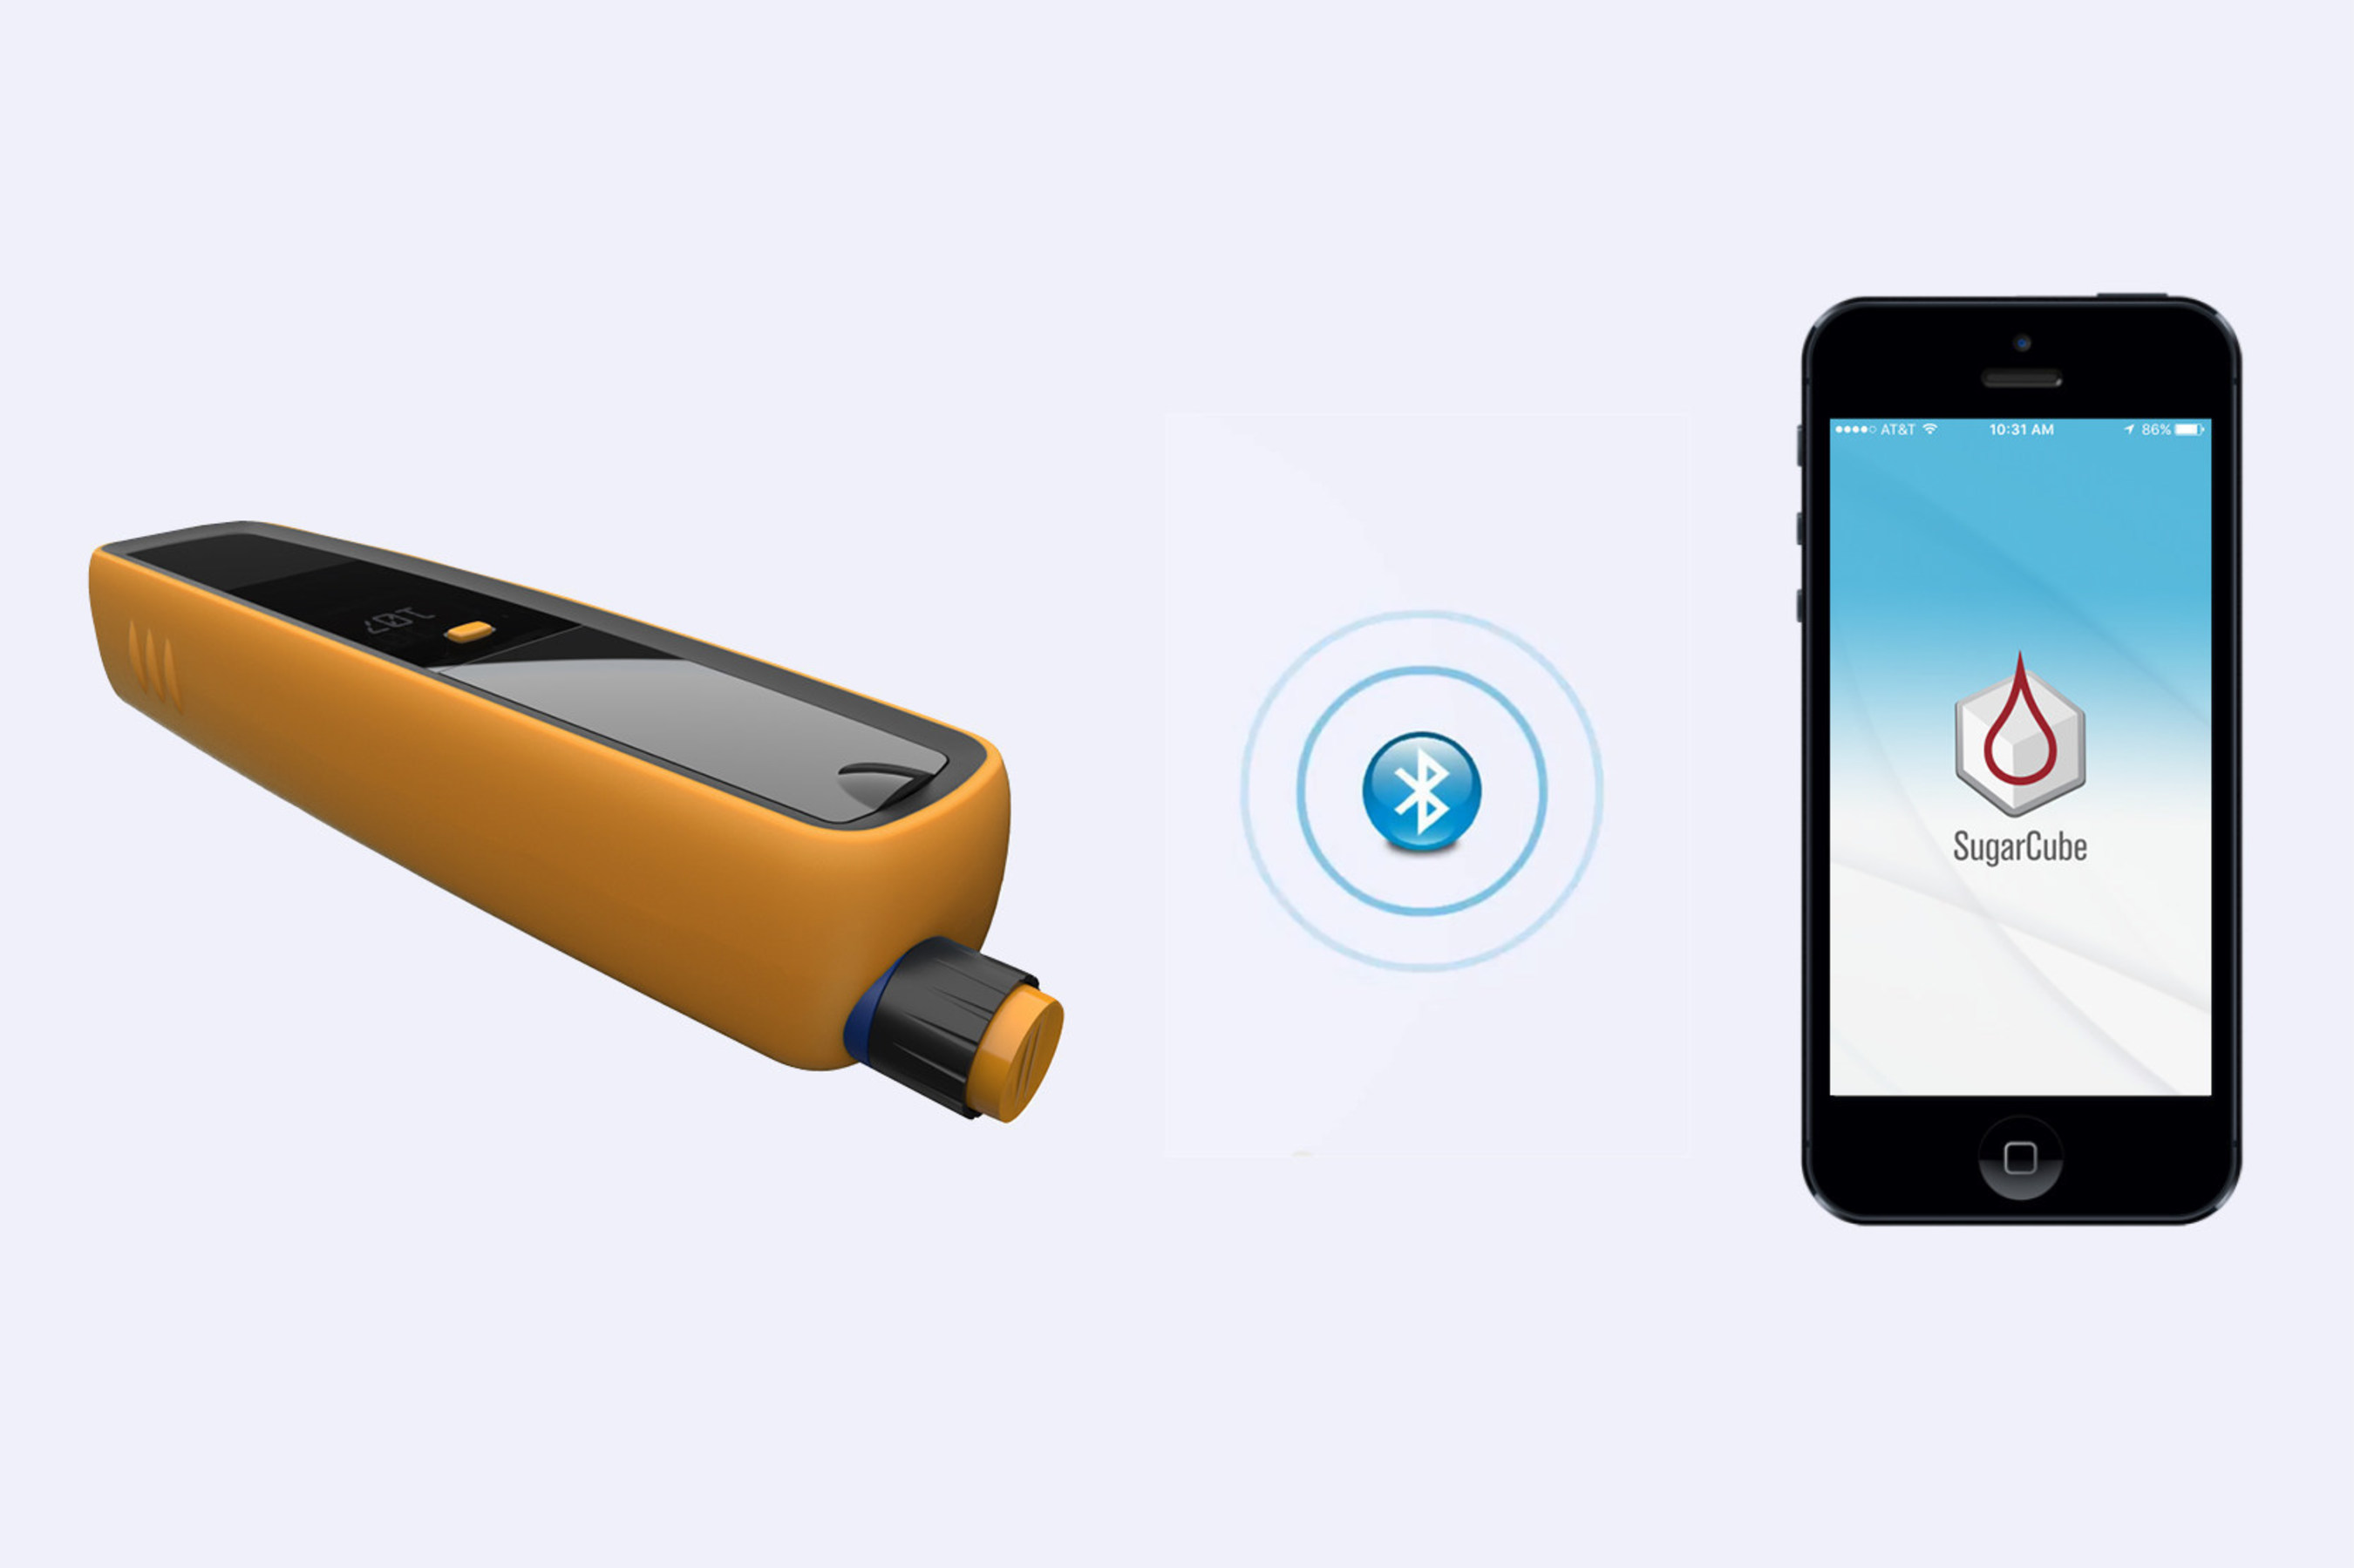 The SugarCube Announces Indiegogo Launch to bring All-in-One Bluetooth® Powered Glucose Testing Kit